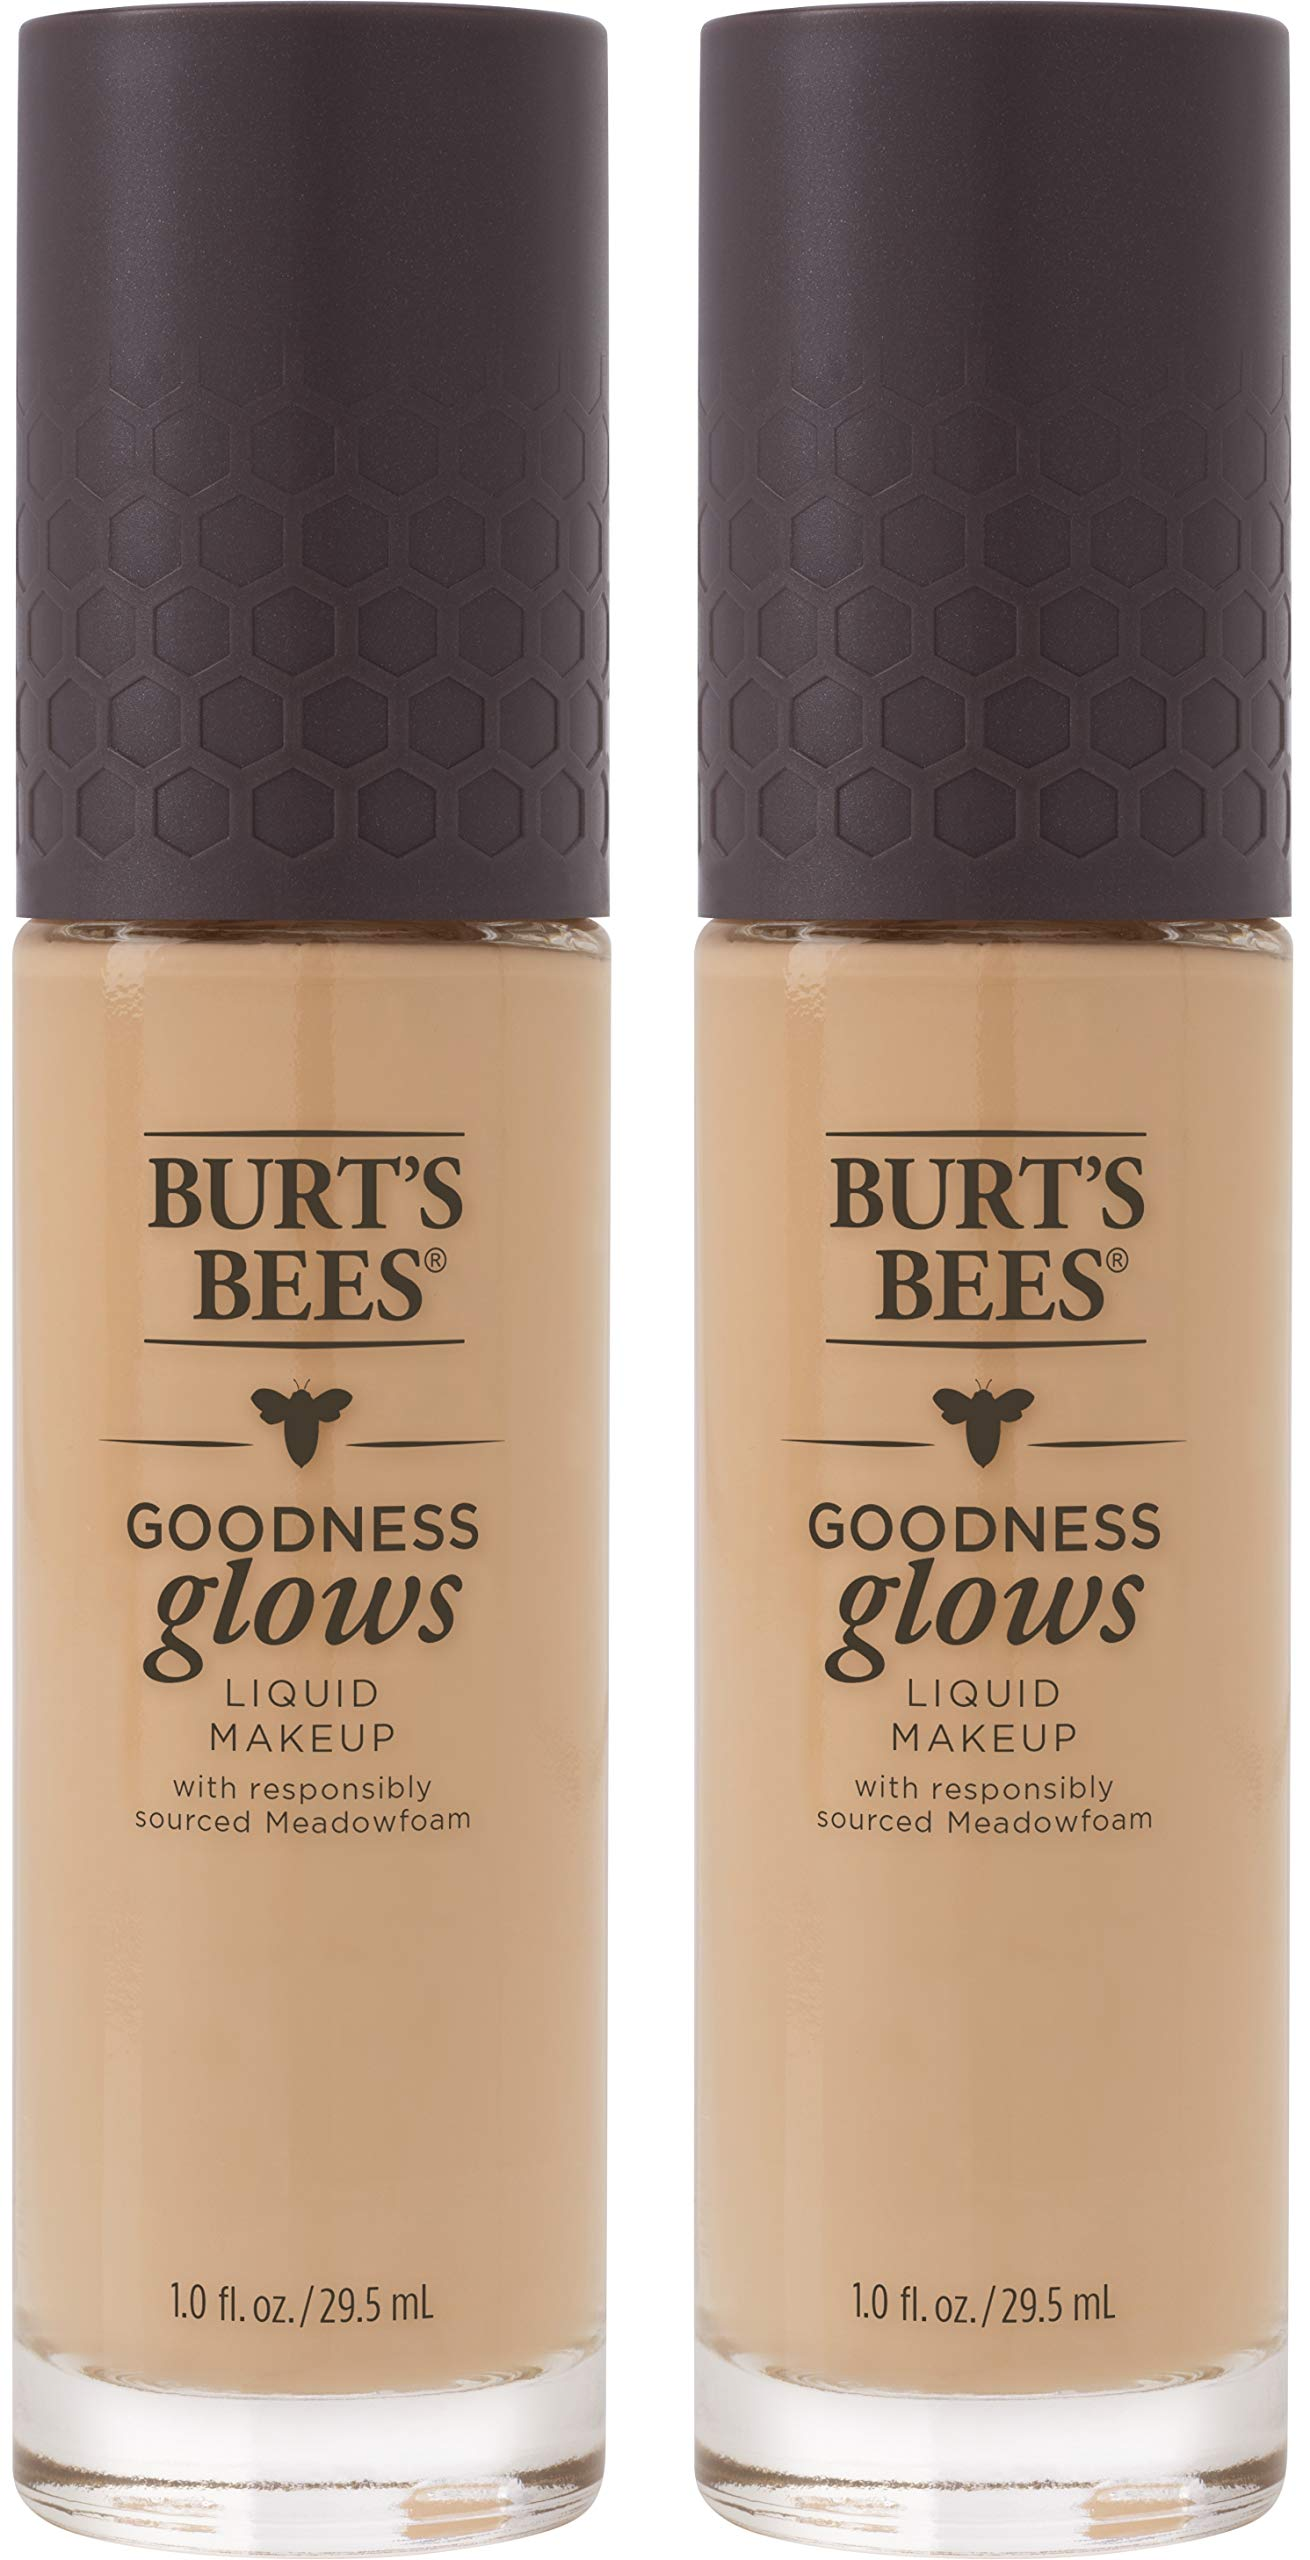 Burts Bees Goodness Glows Liquid Makeup, Natural Beige - 1.0 Ounce (Pack of 2)